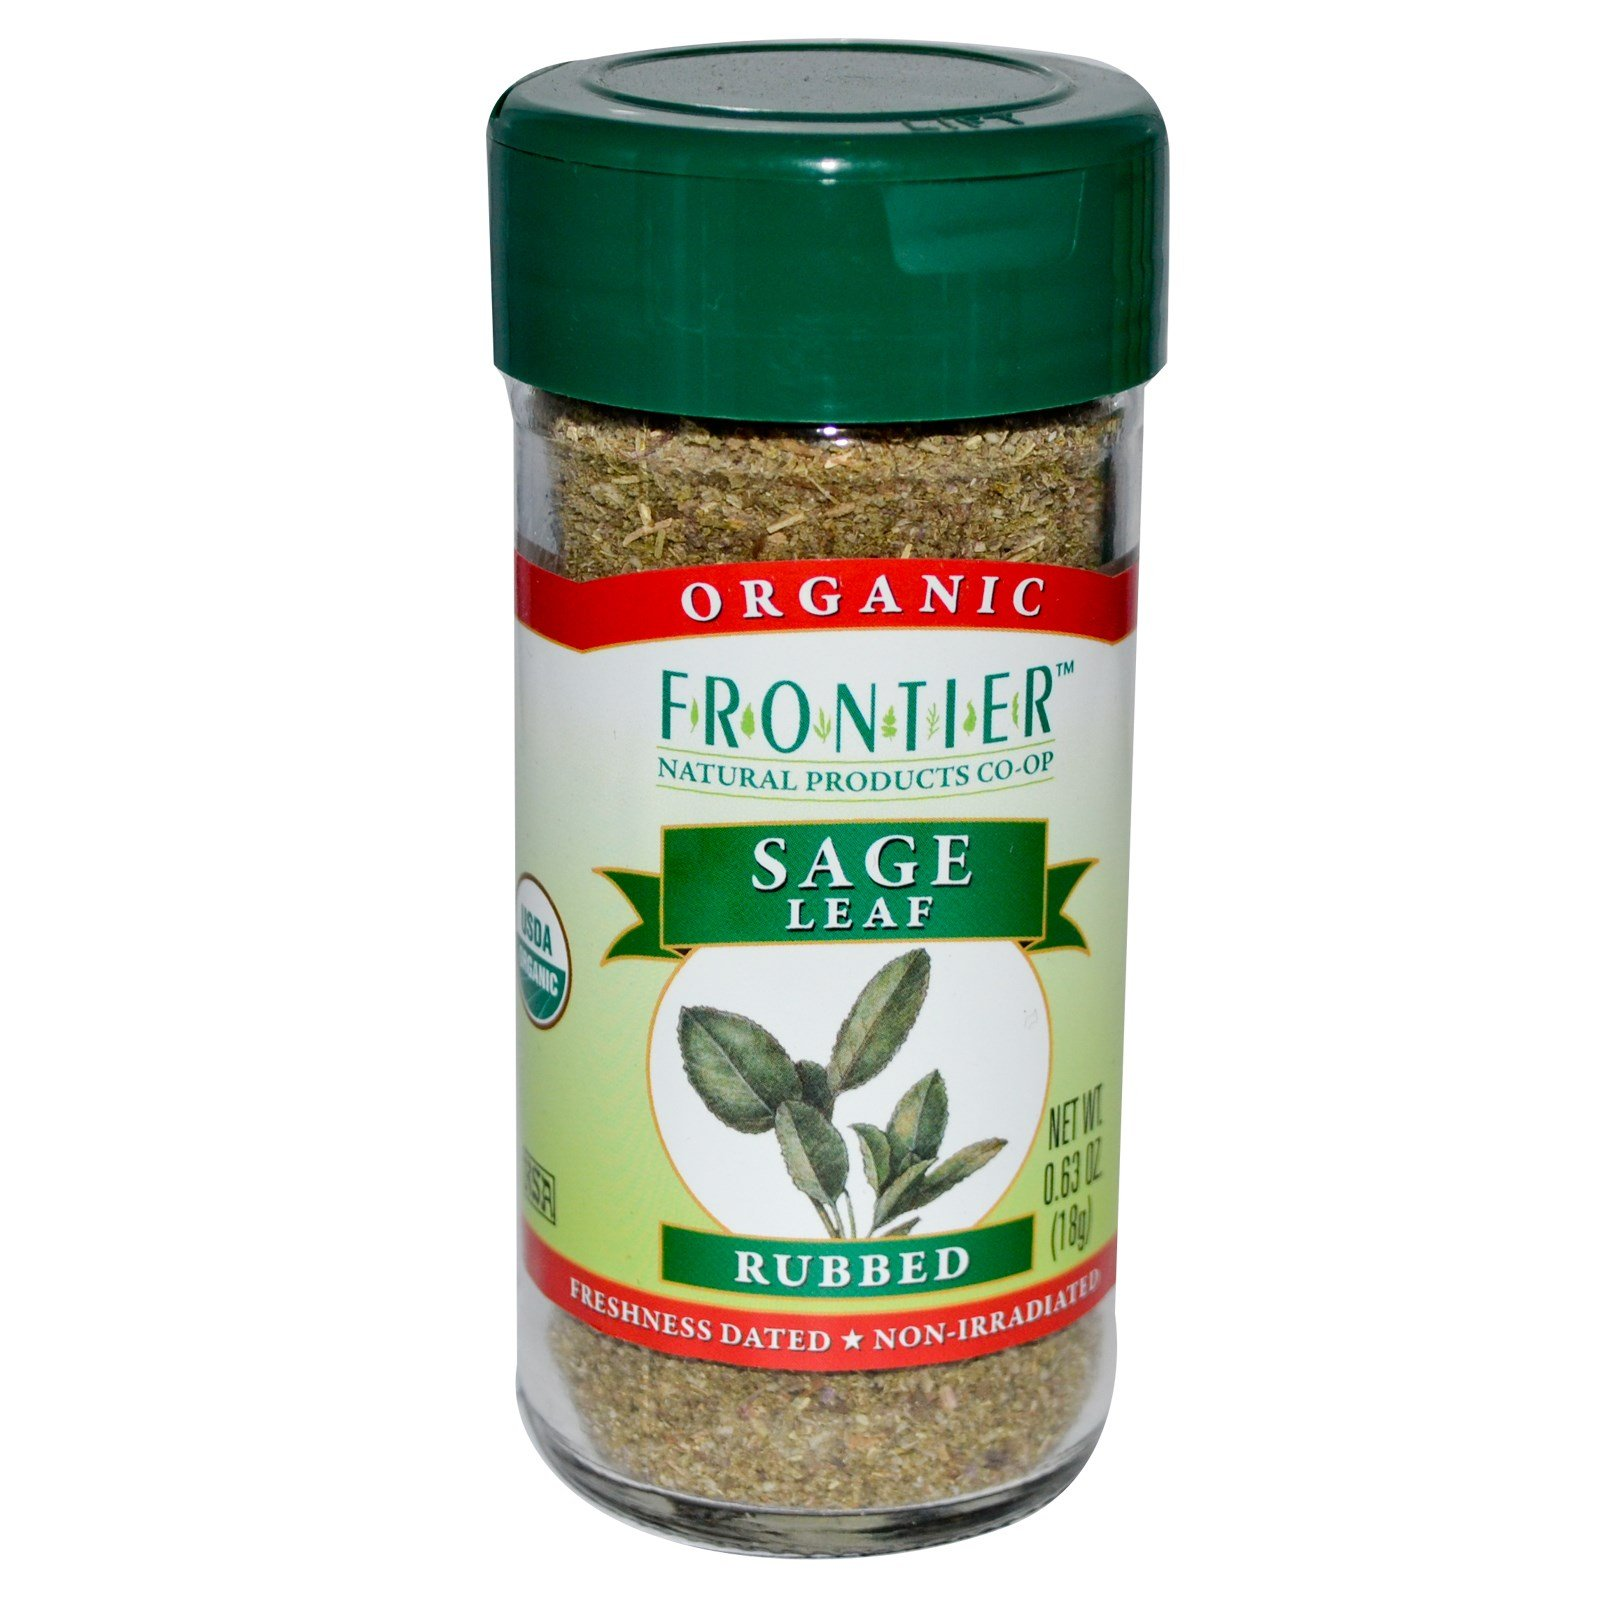 Frontier Natural Products, Organic Sage Leaf, Rubbed, 0.63 oz (18 g) - 2pcs